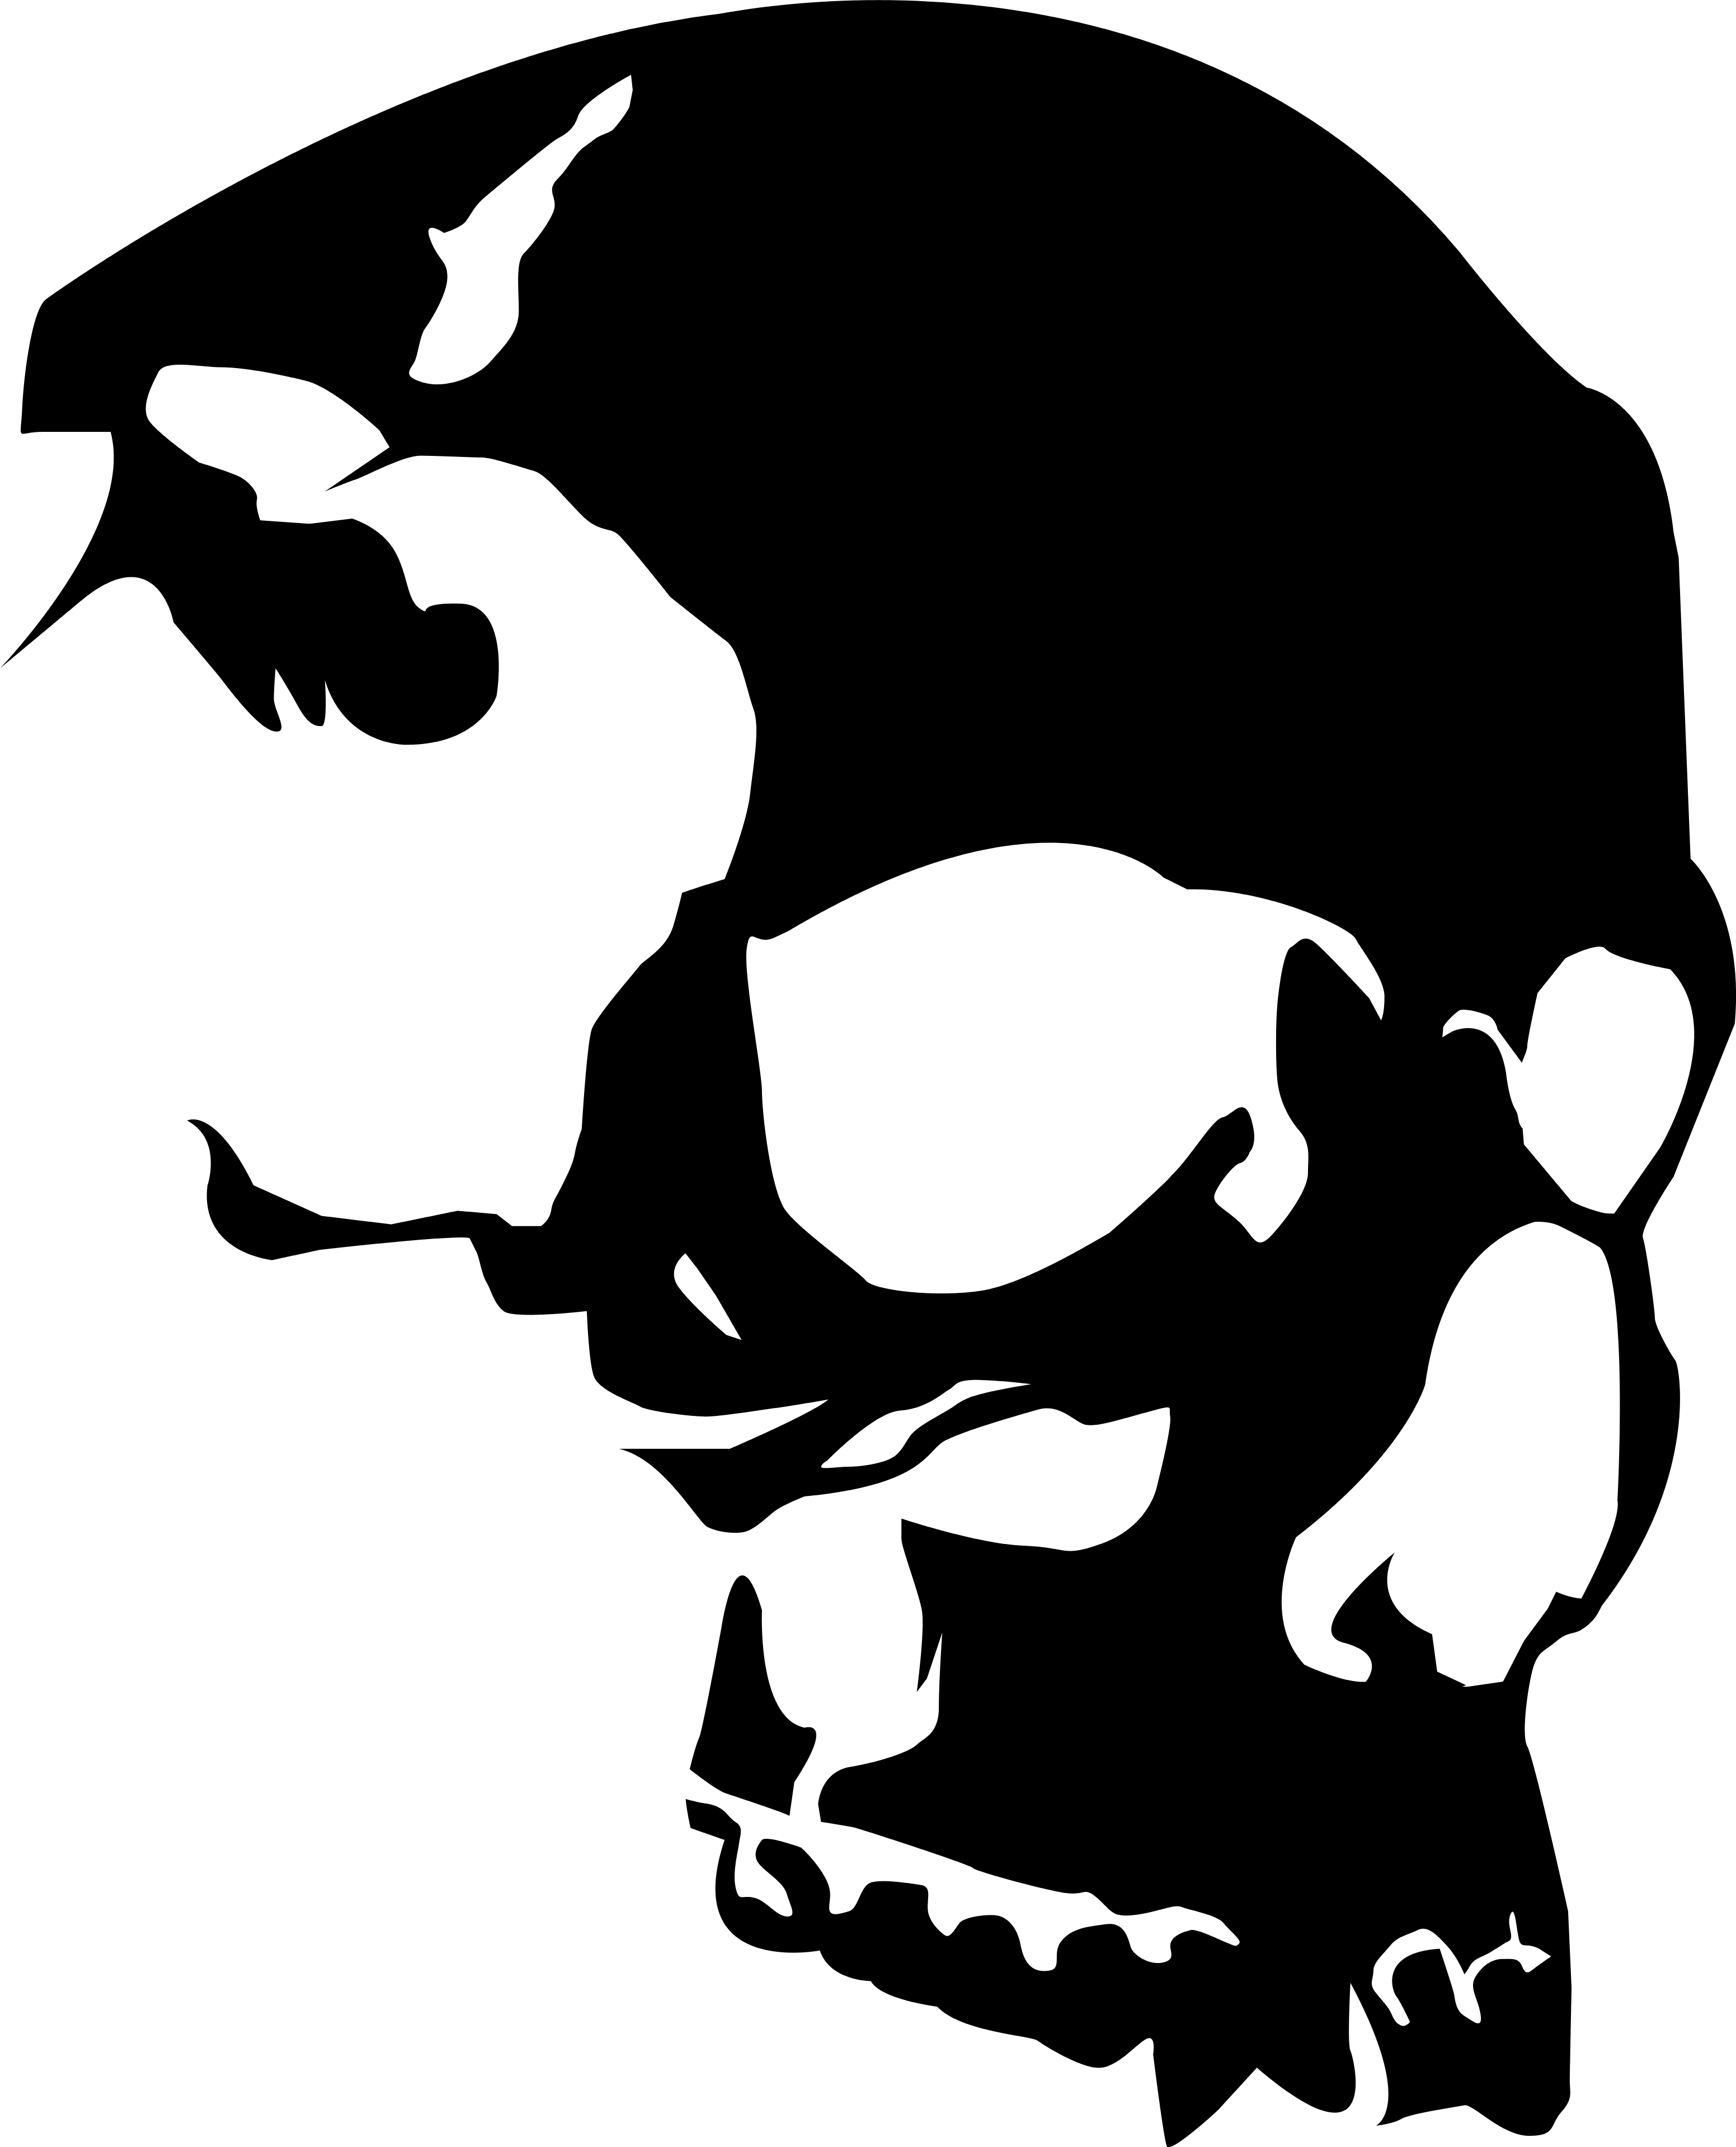 Skull clipart best pirates. Stencil vector clipart freeuse download